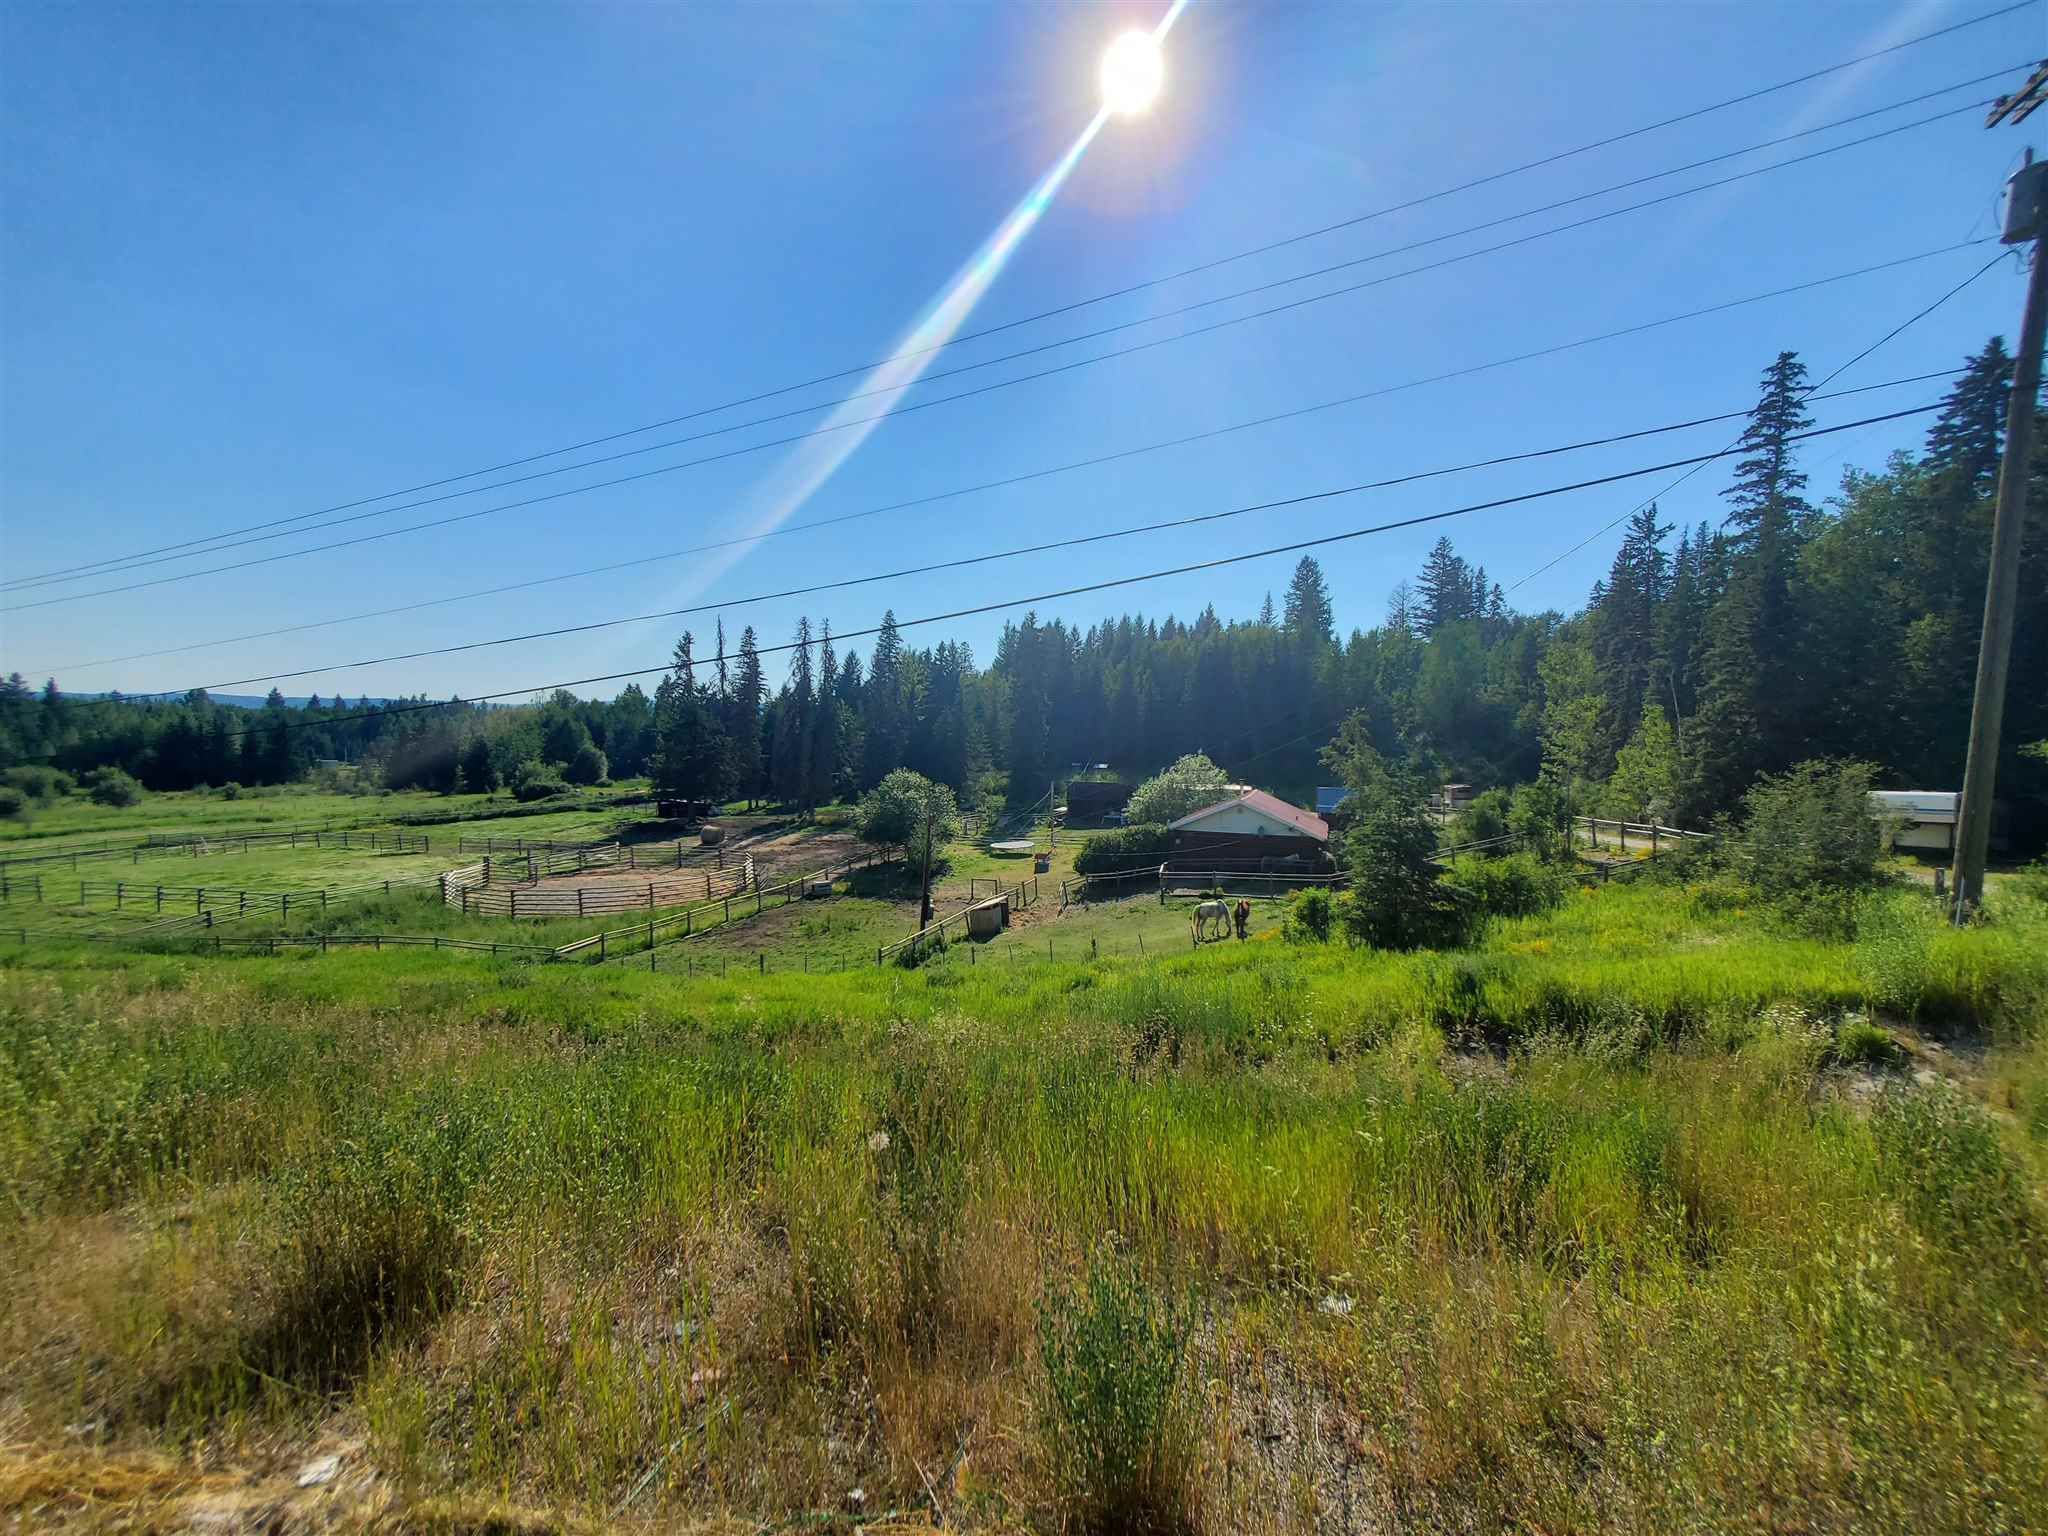 Main Photo: 3238 S 97 Highway in Quesnel: Quesnel Rural - South House for sale (Quesnel (Zone 28))  : MLS®# R2596794